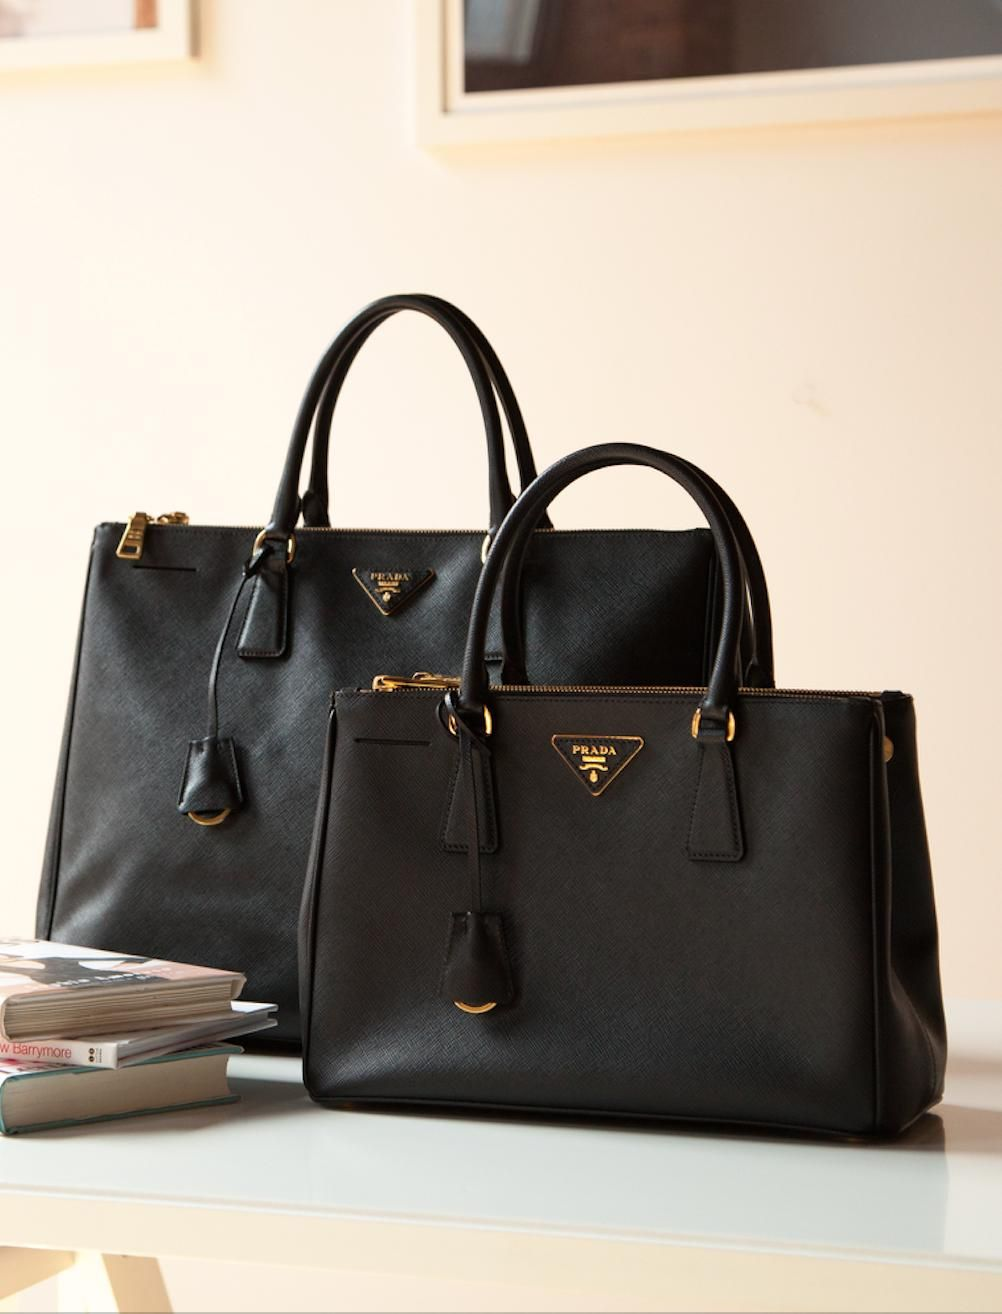 bff6ba513fba Large and small black Prada tote in saffiano leather. | Bags | Prada ...